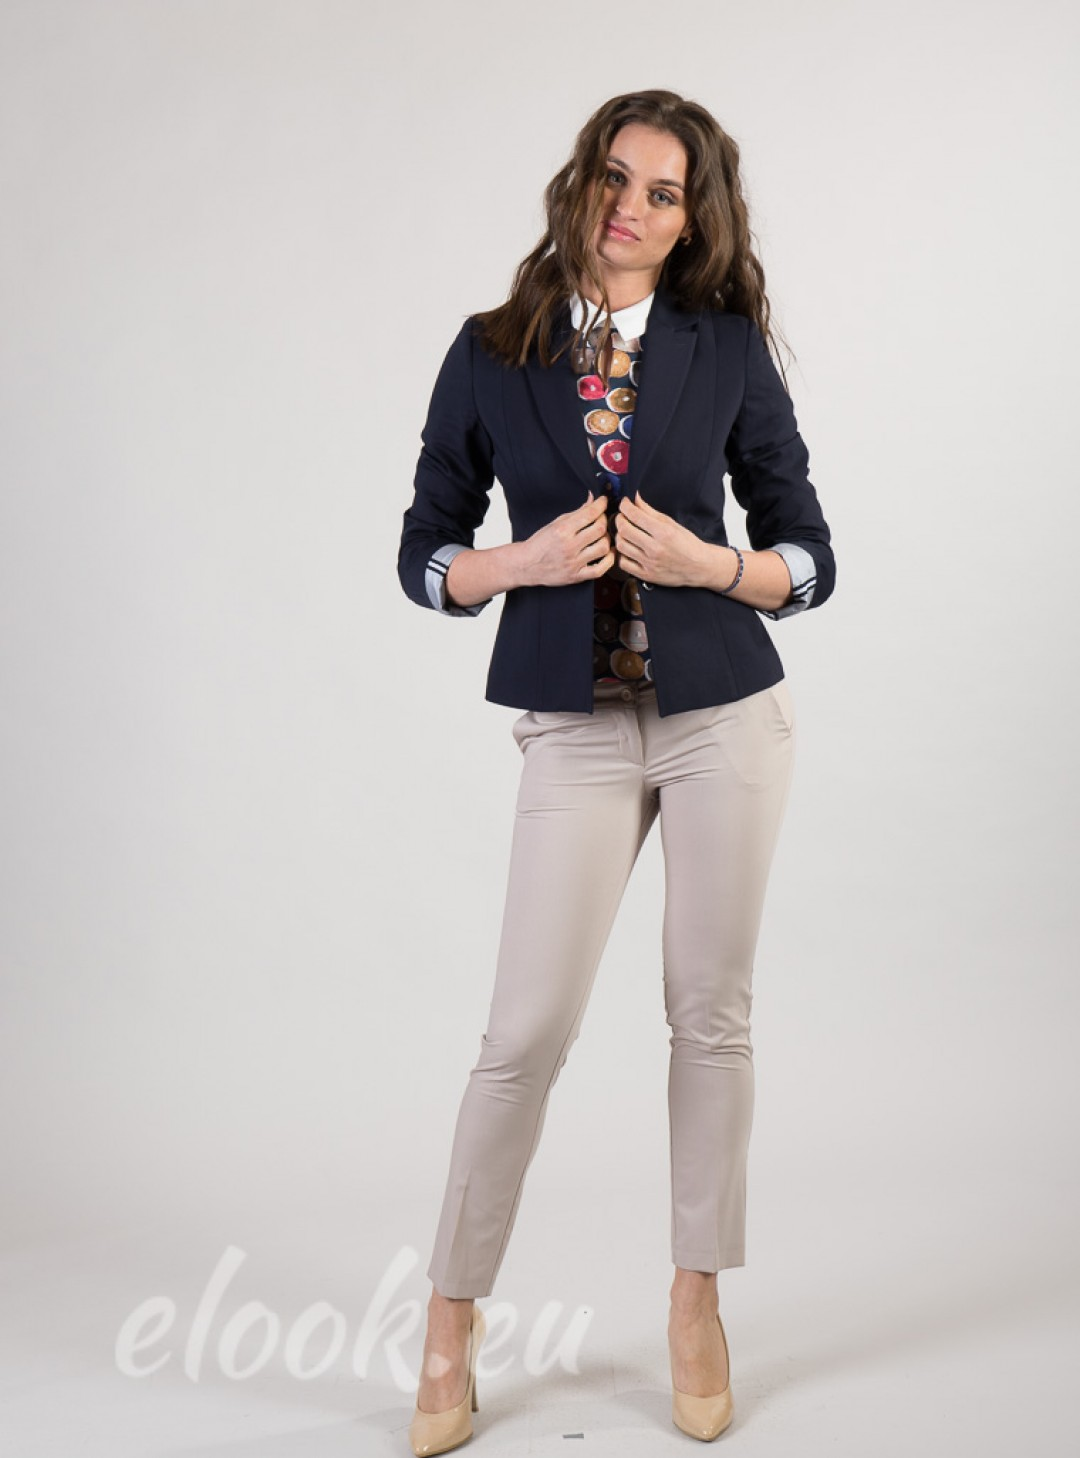 Blazers with marine and sports accents & 2-button fastening. Incl. lining